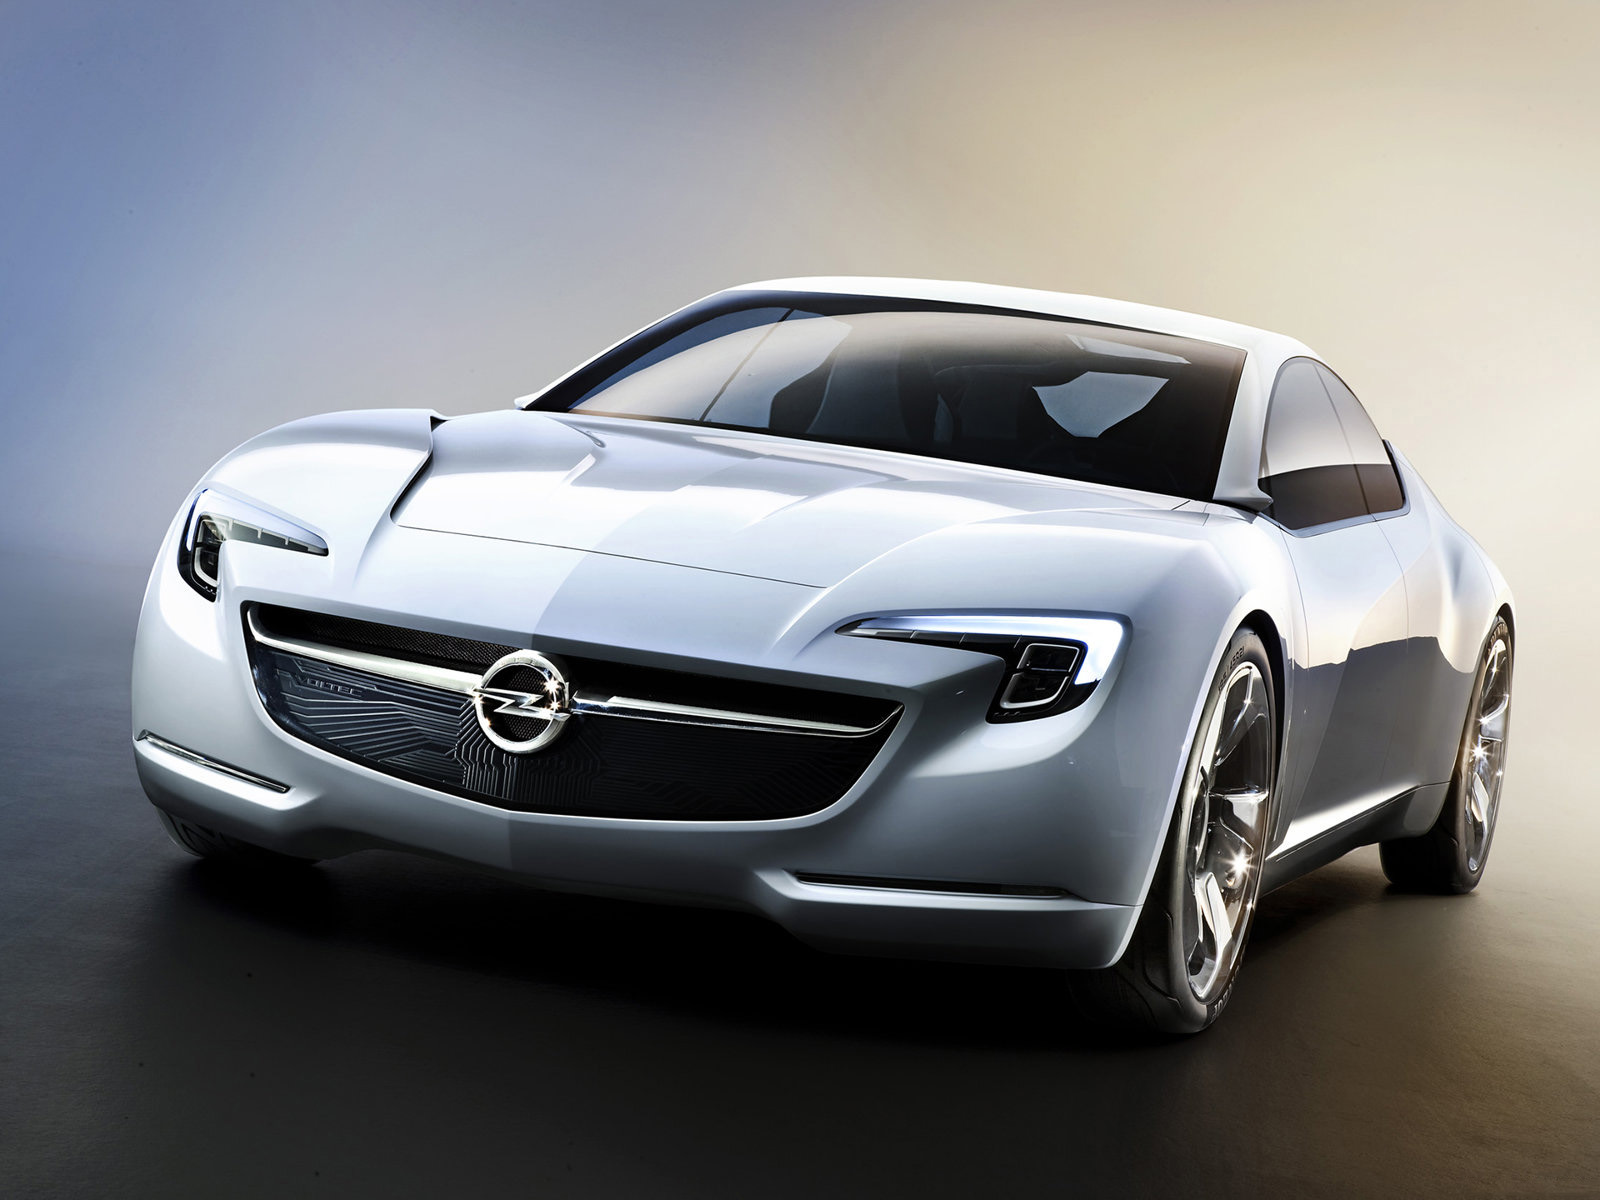 2011 Opel Flextreme GTE Concept 3 2011 Opel Concept Vehicle – A Review